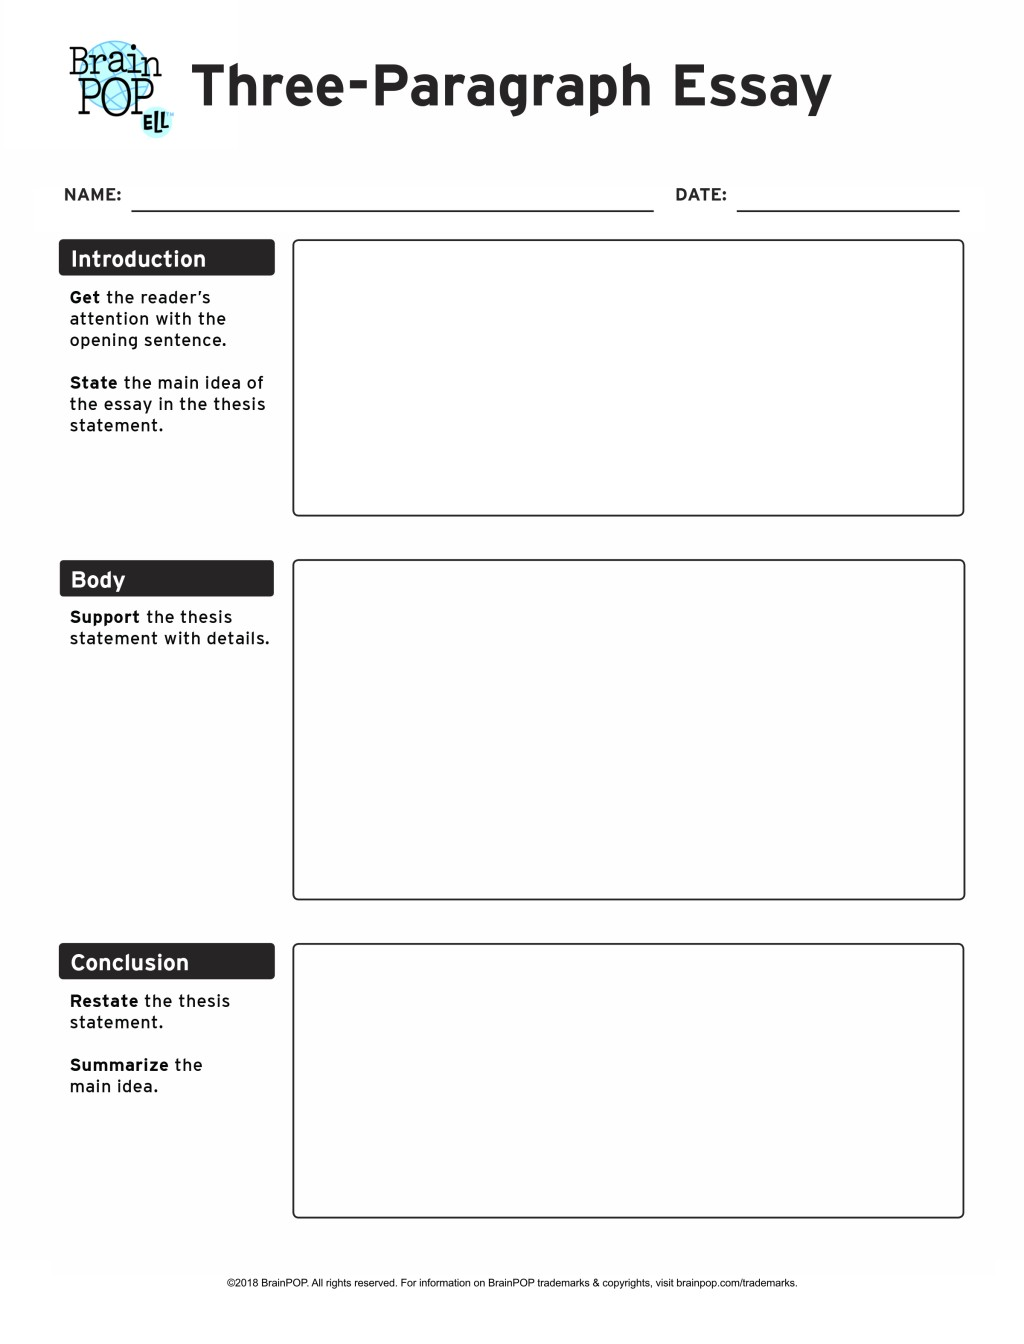 001 Three Essay Graphic Organizer Example Exceptional Paragraph Descriptive Narrative Examples Outline Template Large